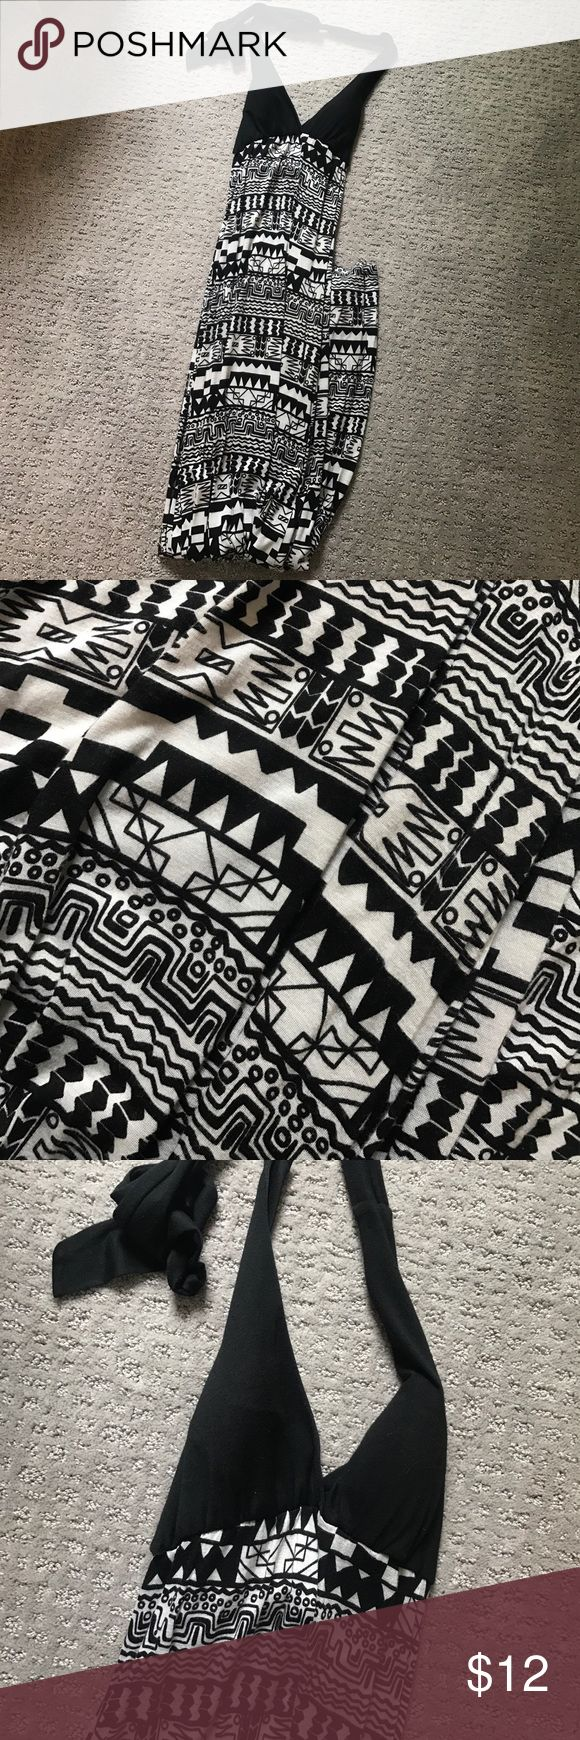 Black and White Maxi Tribal Print Dress Black and White Maxi Tribal Print Dress. Perfect for baby or wedding showers. Removable cups. Wet Seal Dresses Maxi